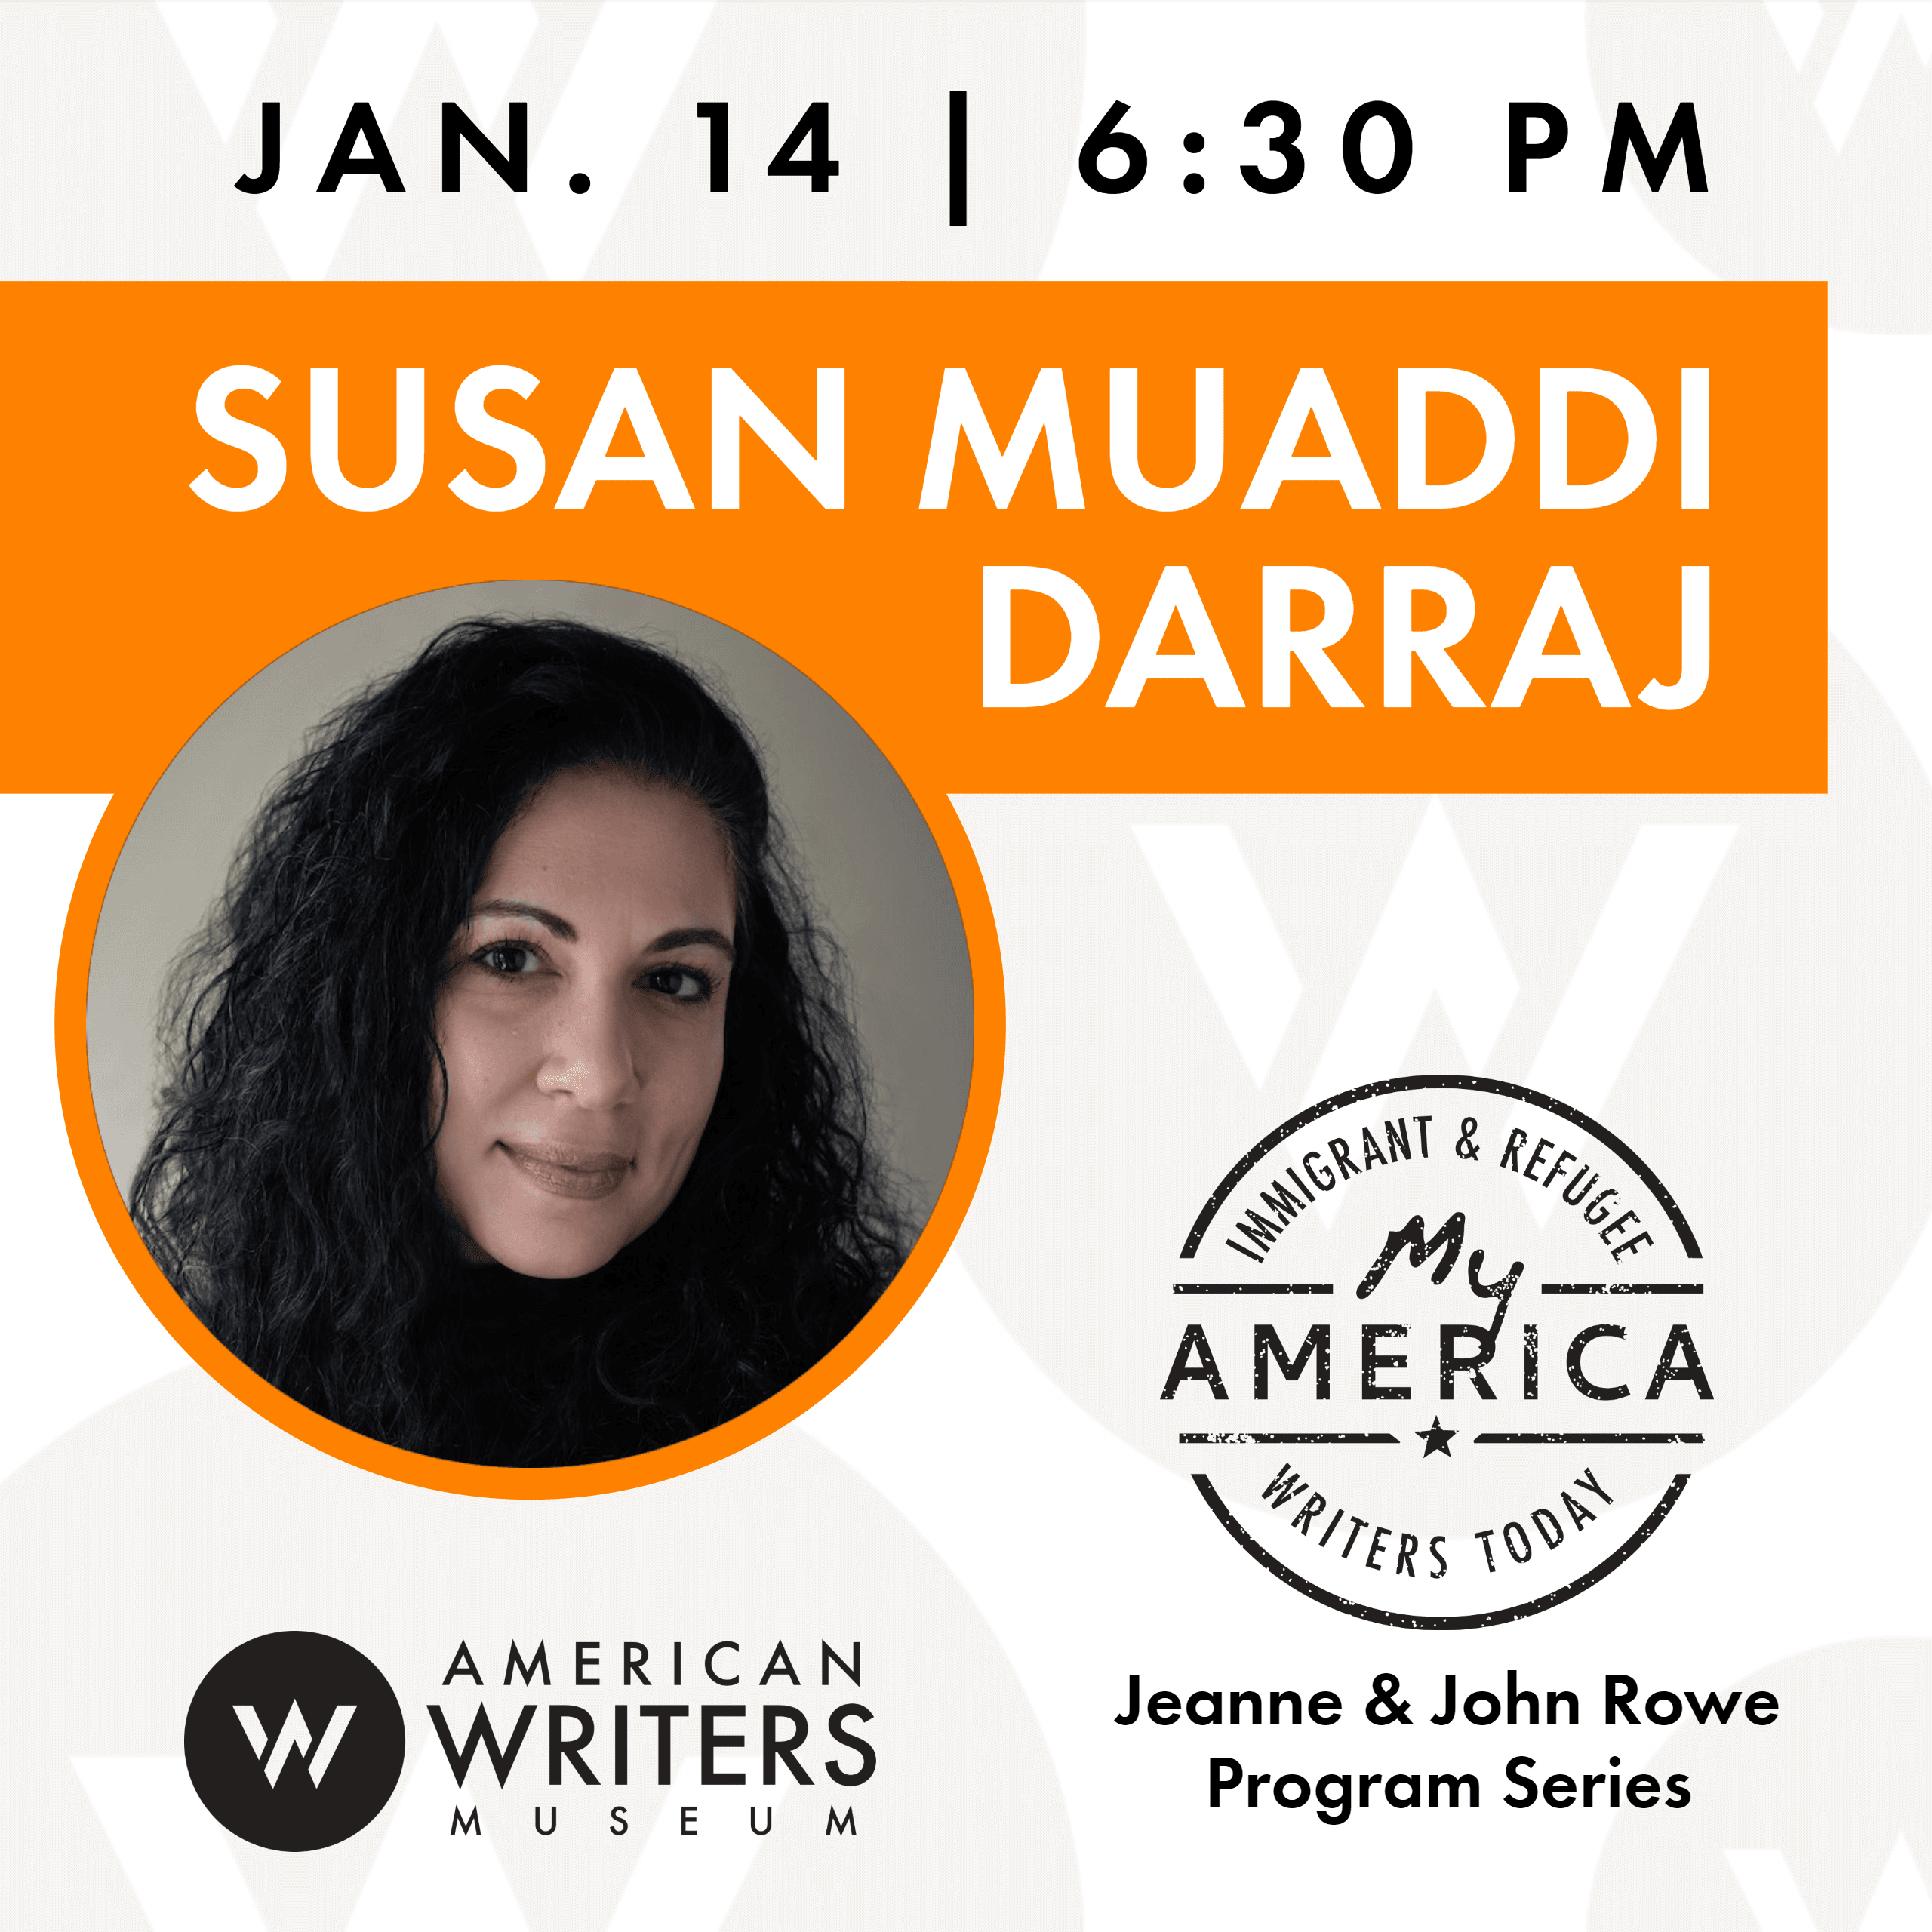 Reading and book signing with Susan Muaddi Darraj at the American Writers Museum on January 14